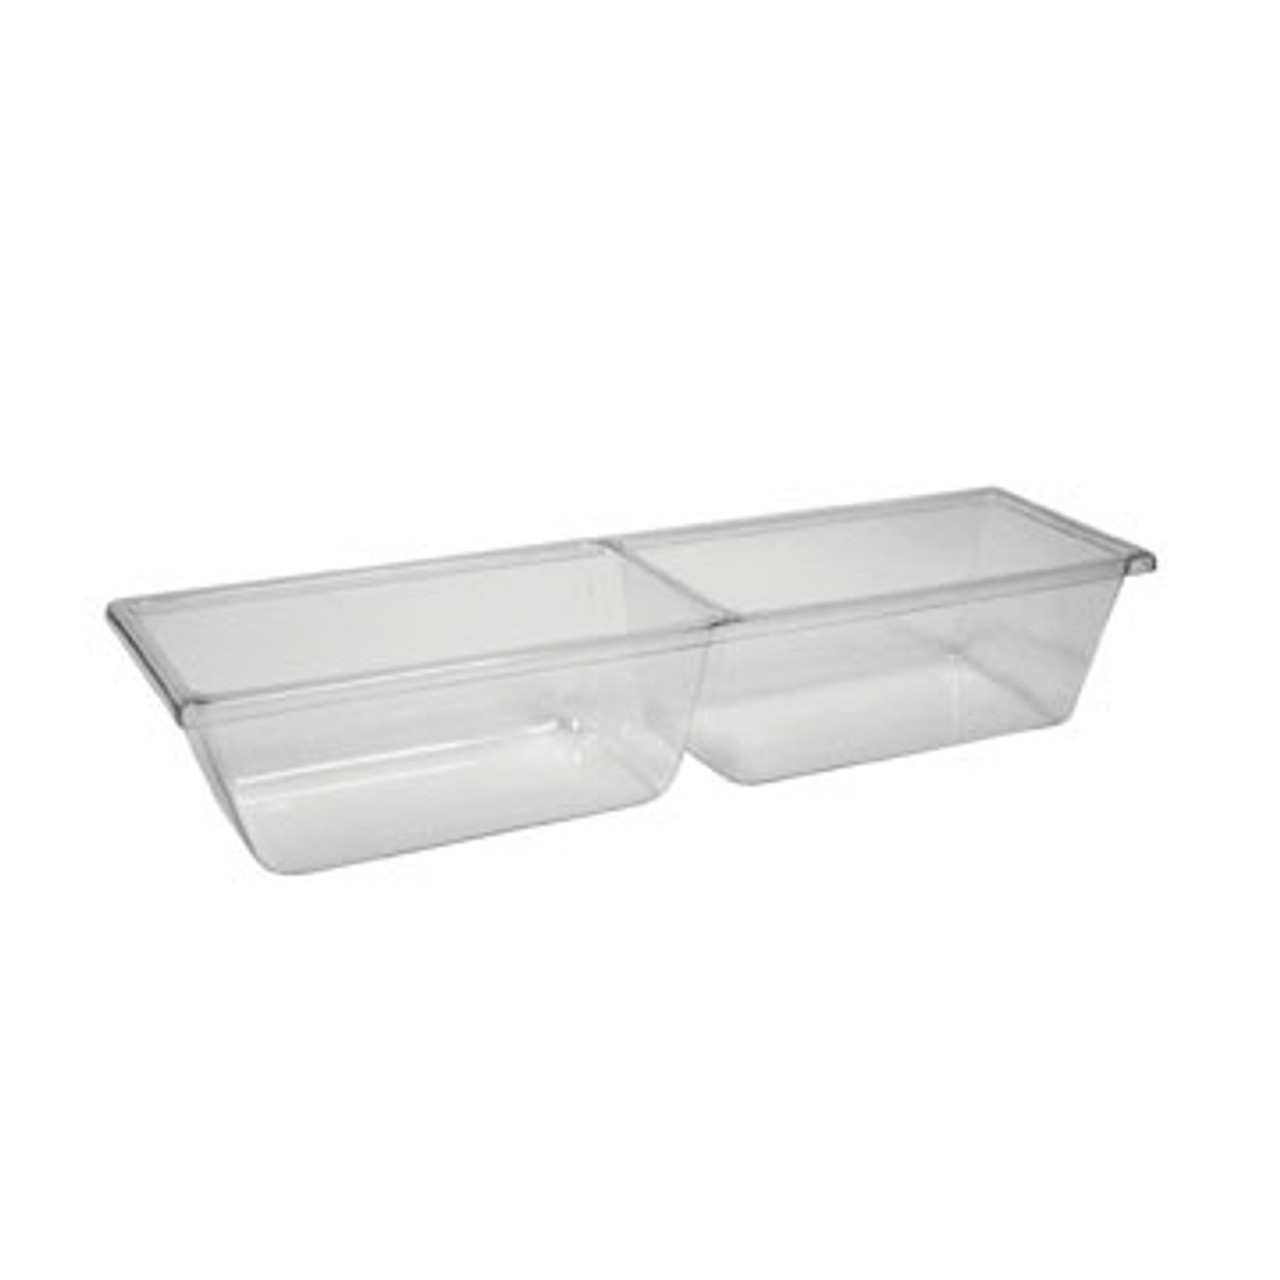 Two Compartment Molded Clear Pan